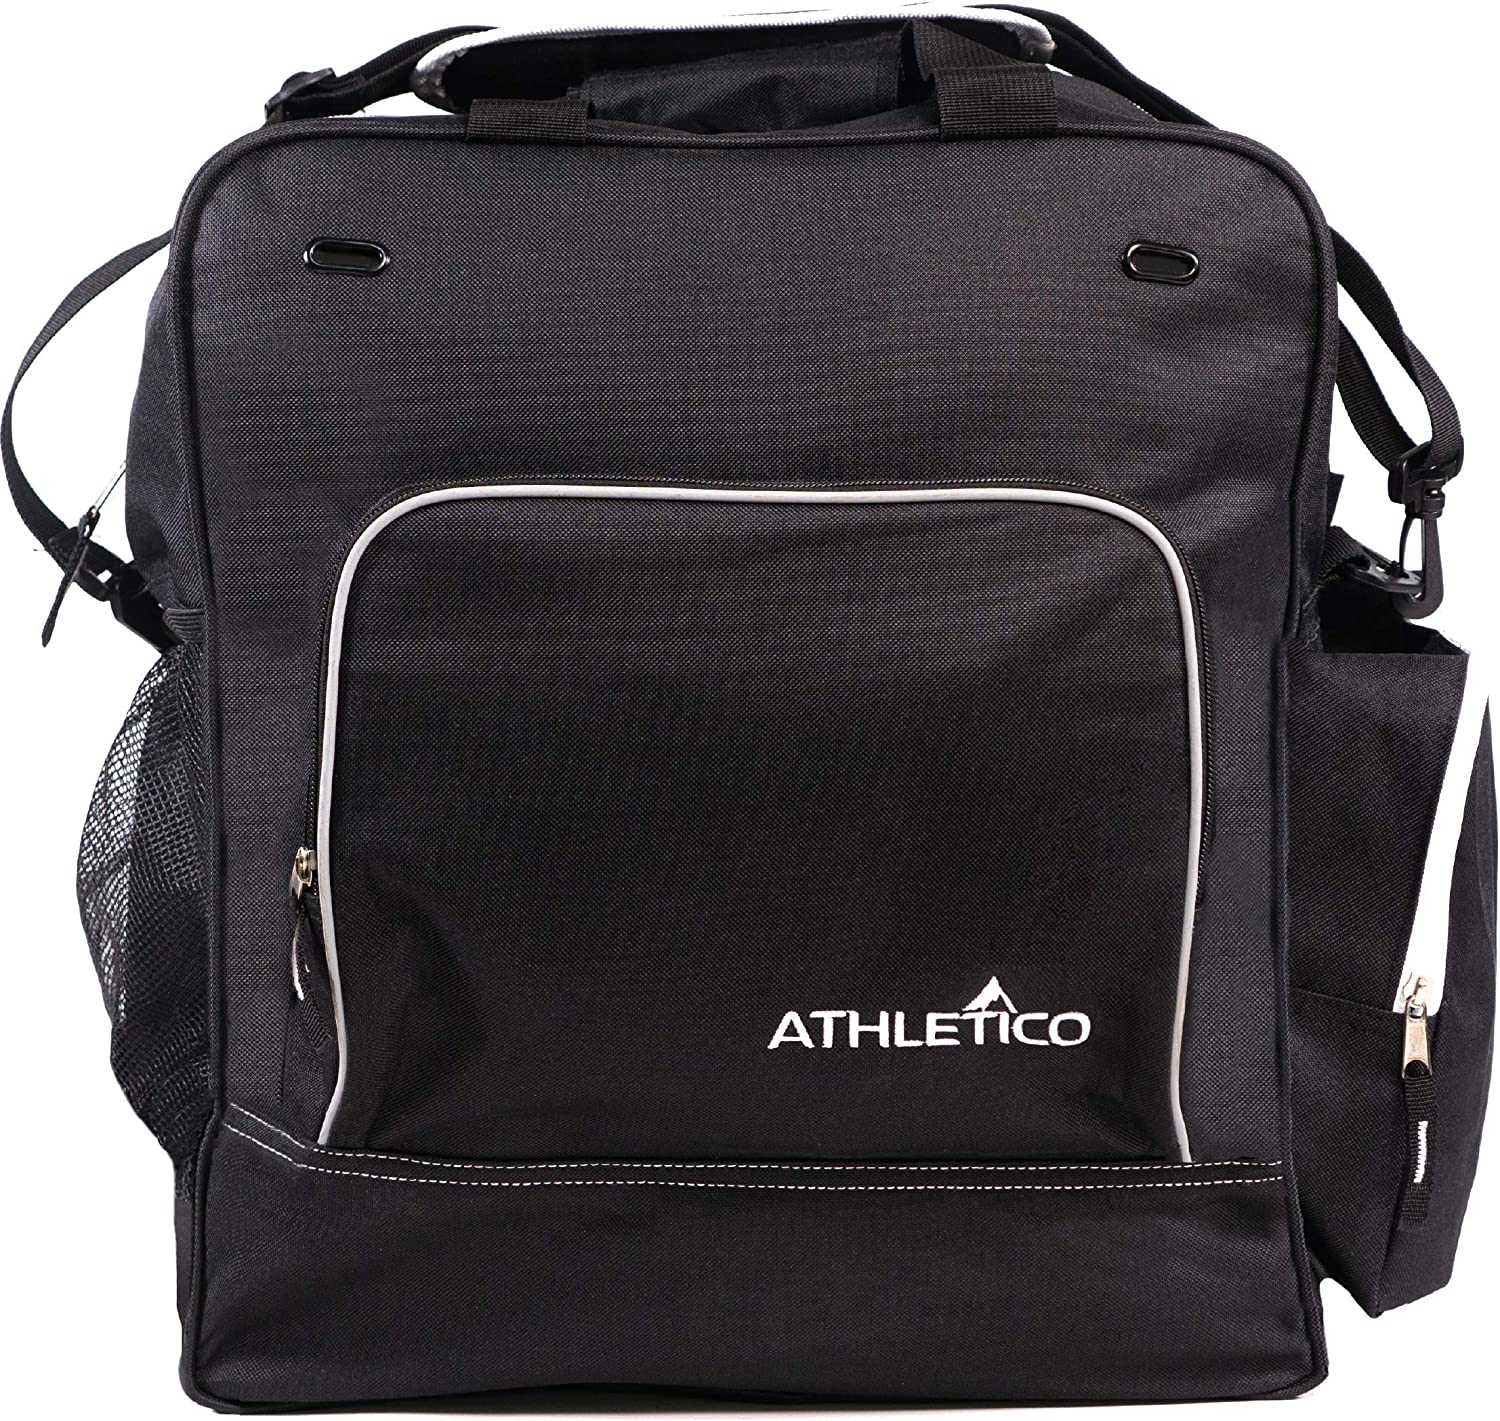 Athletico Weekend Ski Boot Bag - Snowboard Boot Bag - Skiing and Snowboarding Travel Luggage - Stores Gear Including Jacket, Helmet, Goggles, Gloves & ...